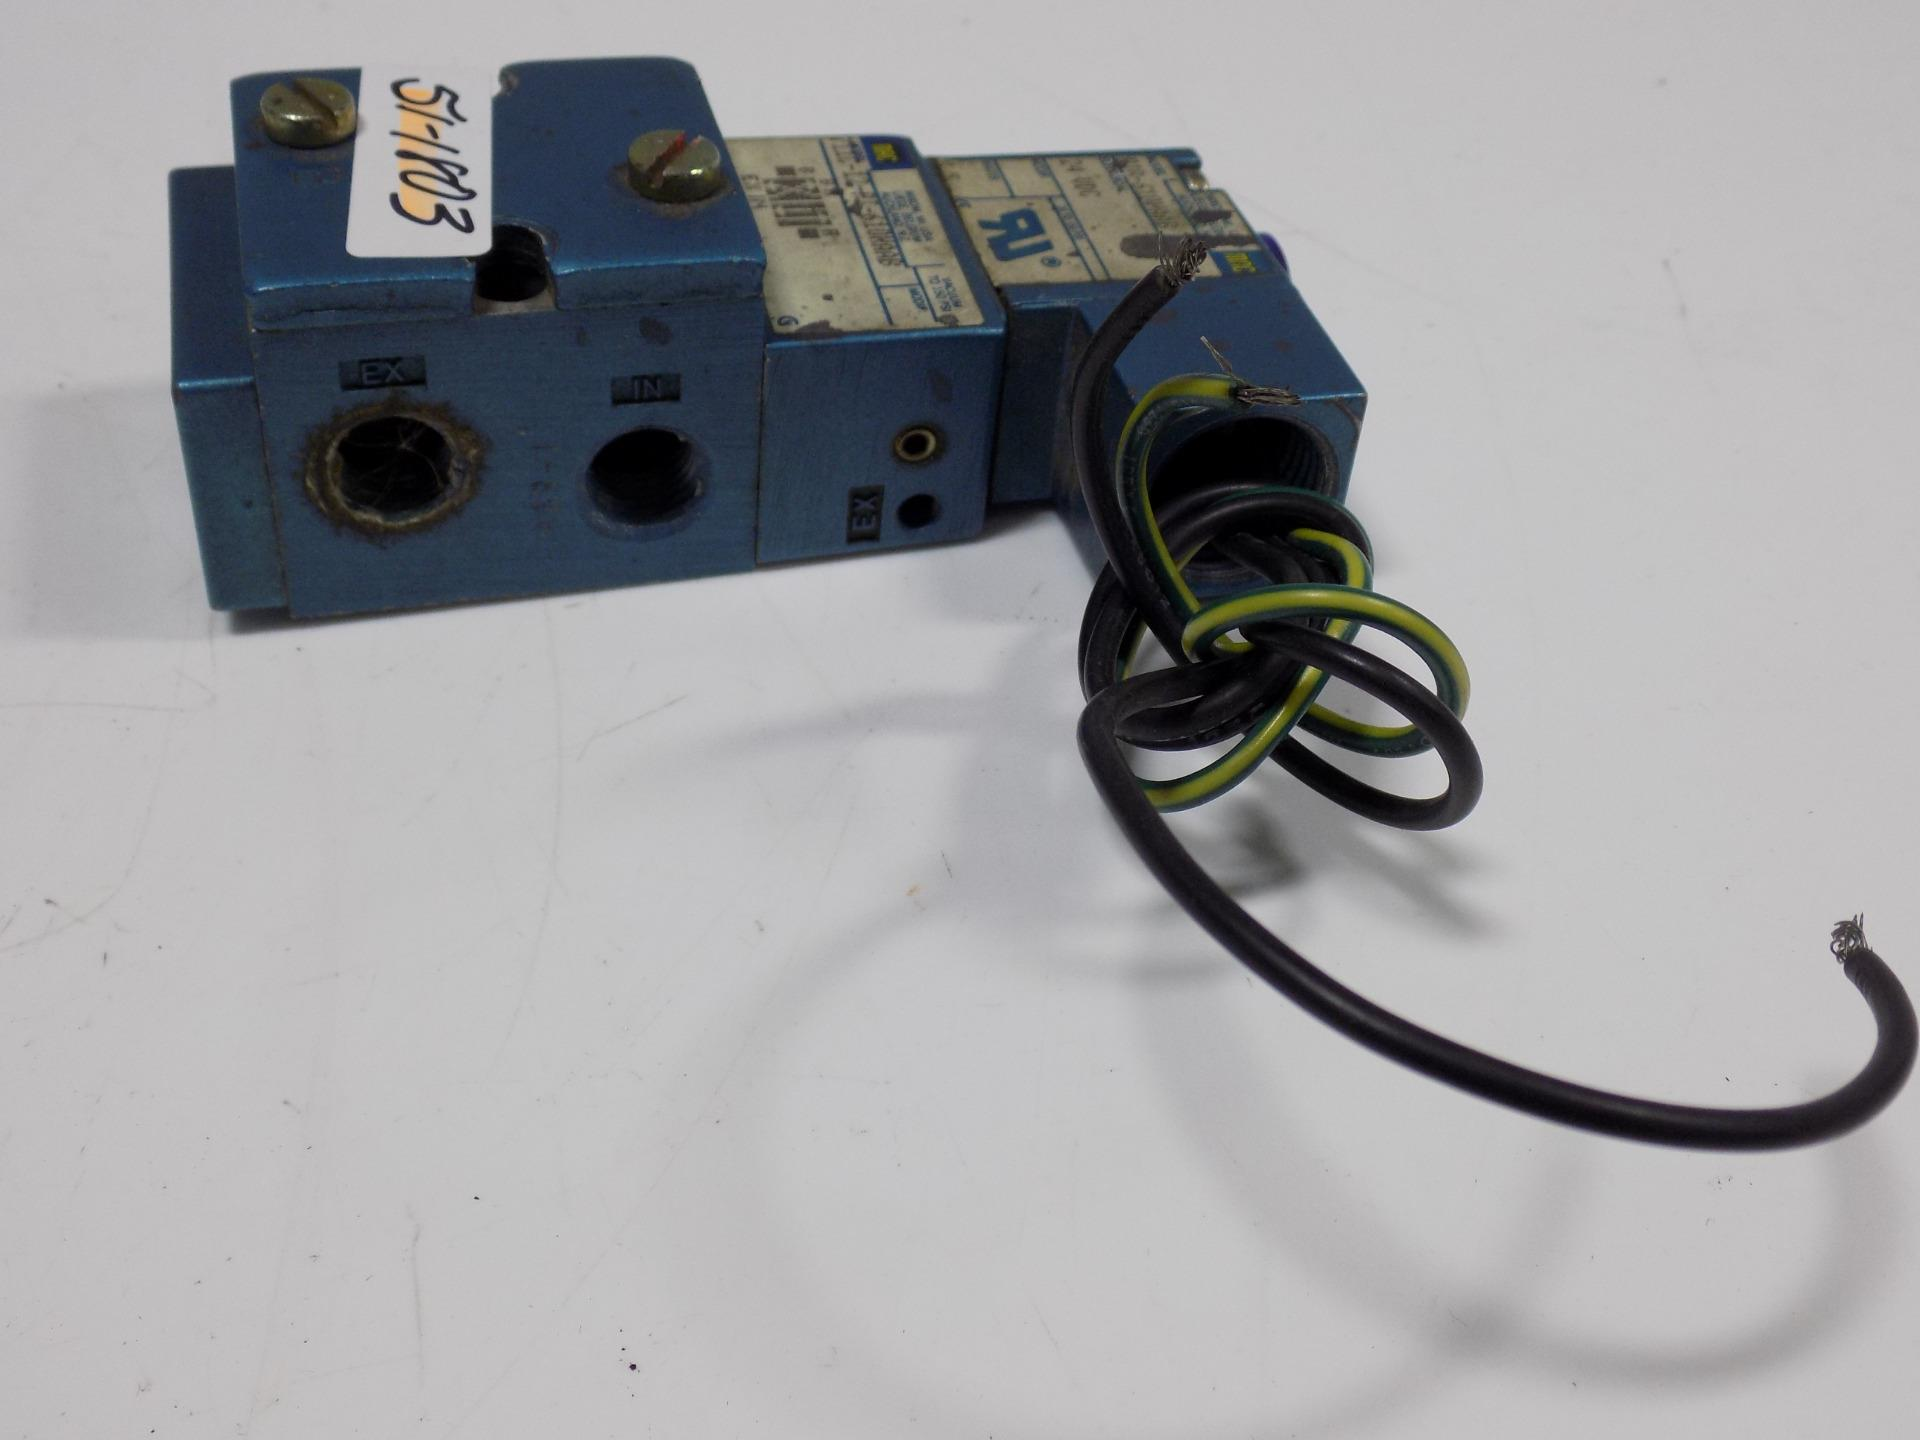 Mac Solenoid Valve 711c 12 Pi 610naab Ebay Wiring Lsjch06192017 Shelf51 18031 Jobcodeunknown A Message From The System Admin Of Concepts Industrial